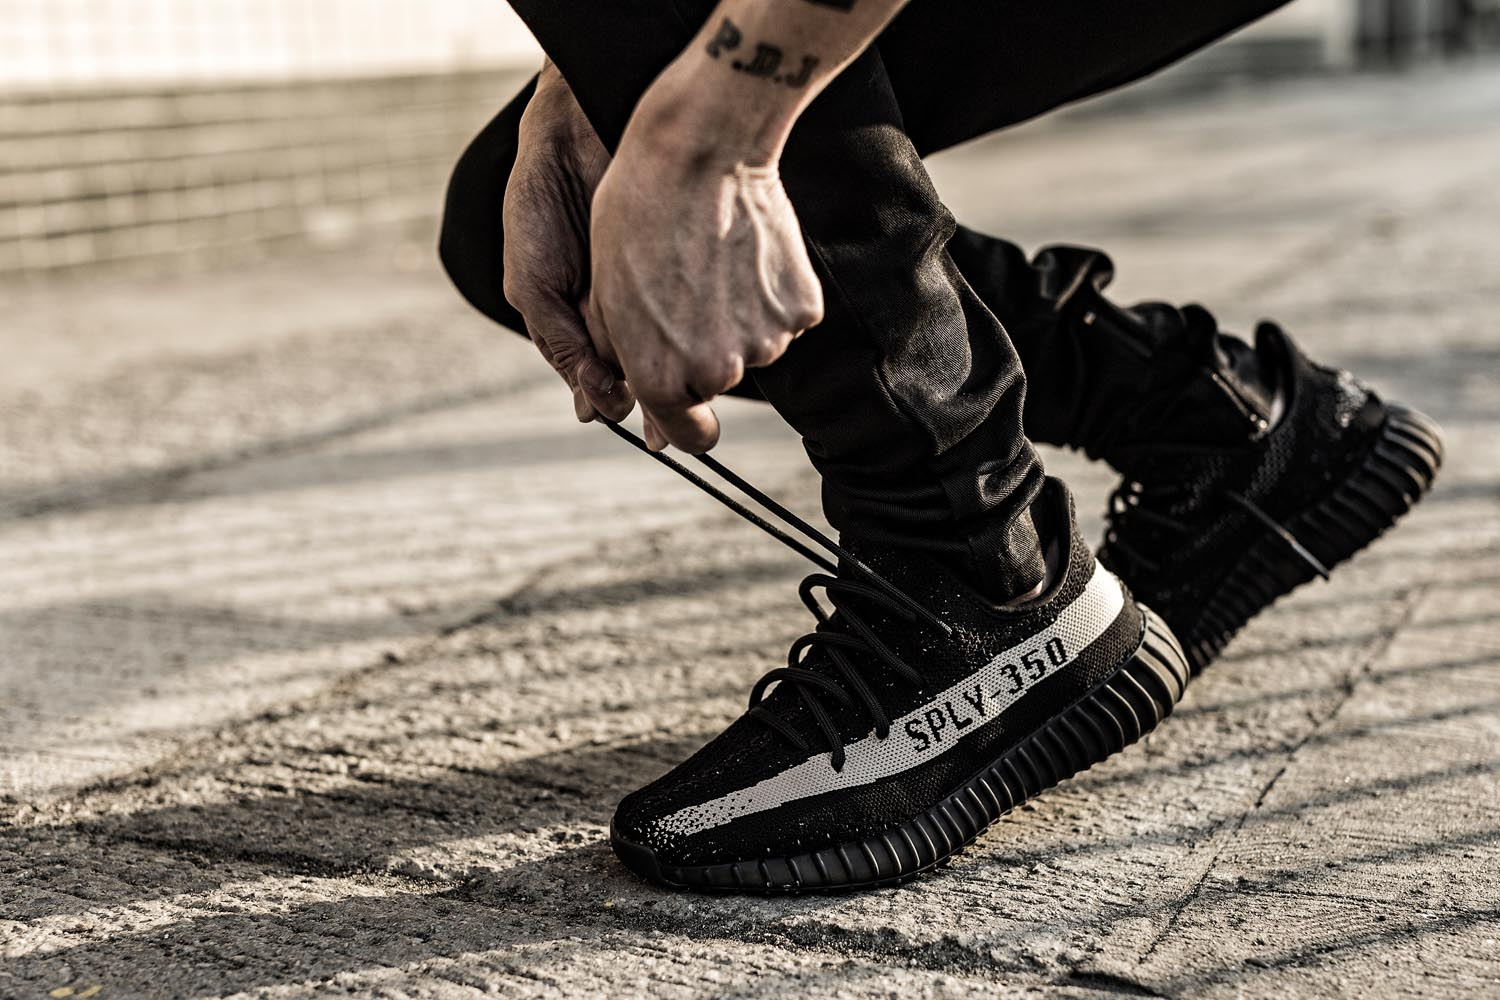 Adidas Yeezy 350 V2 Boost Low SPLY Kanye West by gray